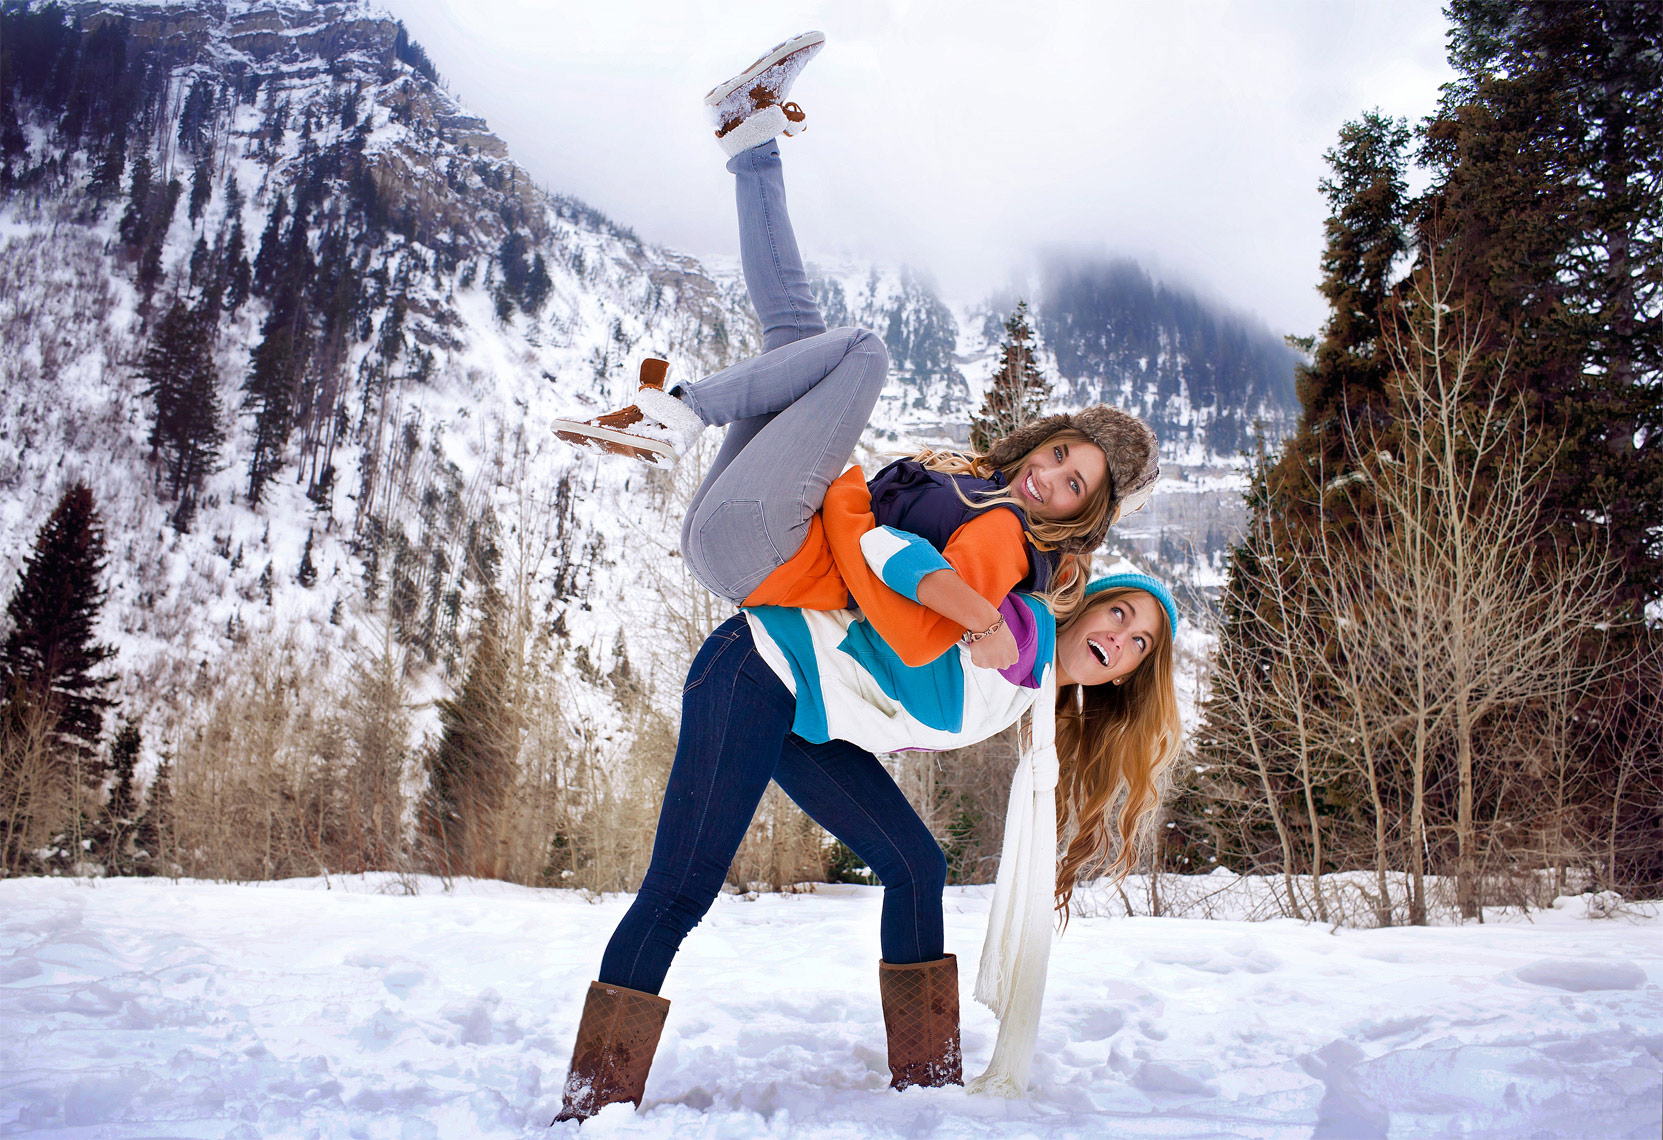 advertising-lifestyle-photo-of-girls-playing-in-mountain-country-by-detroit-photographer-scott-stewart